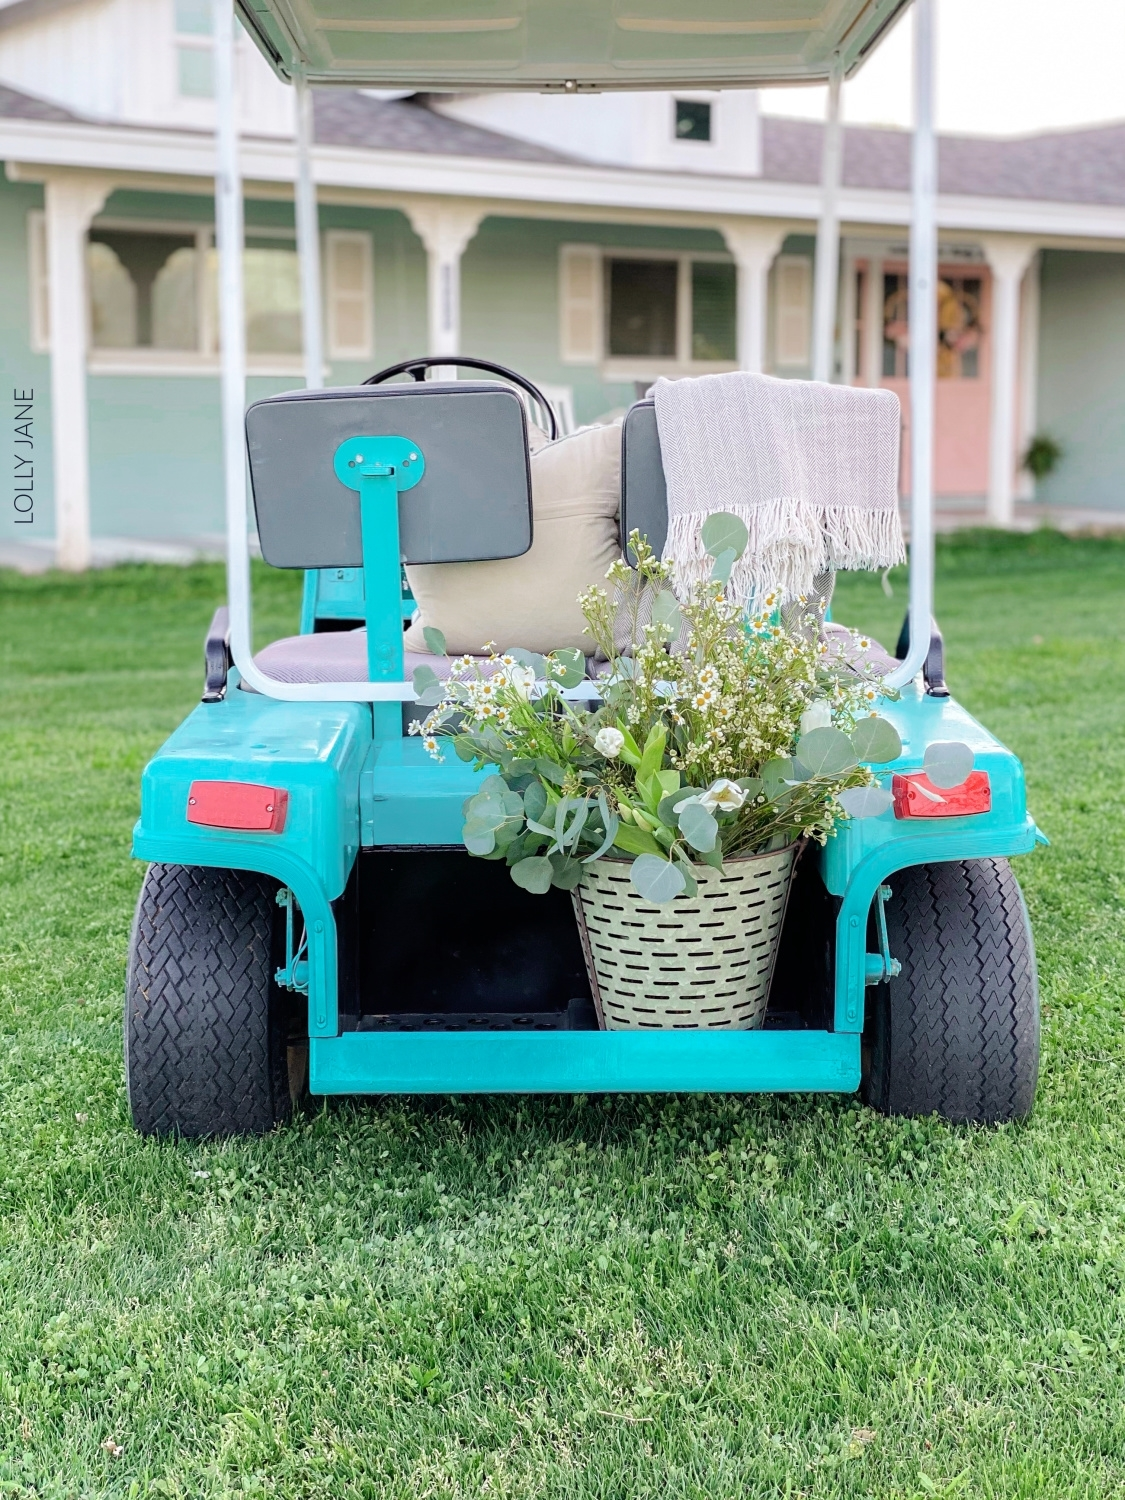 Golf Cart Makeover with Spray Paint